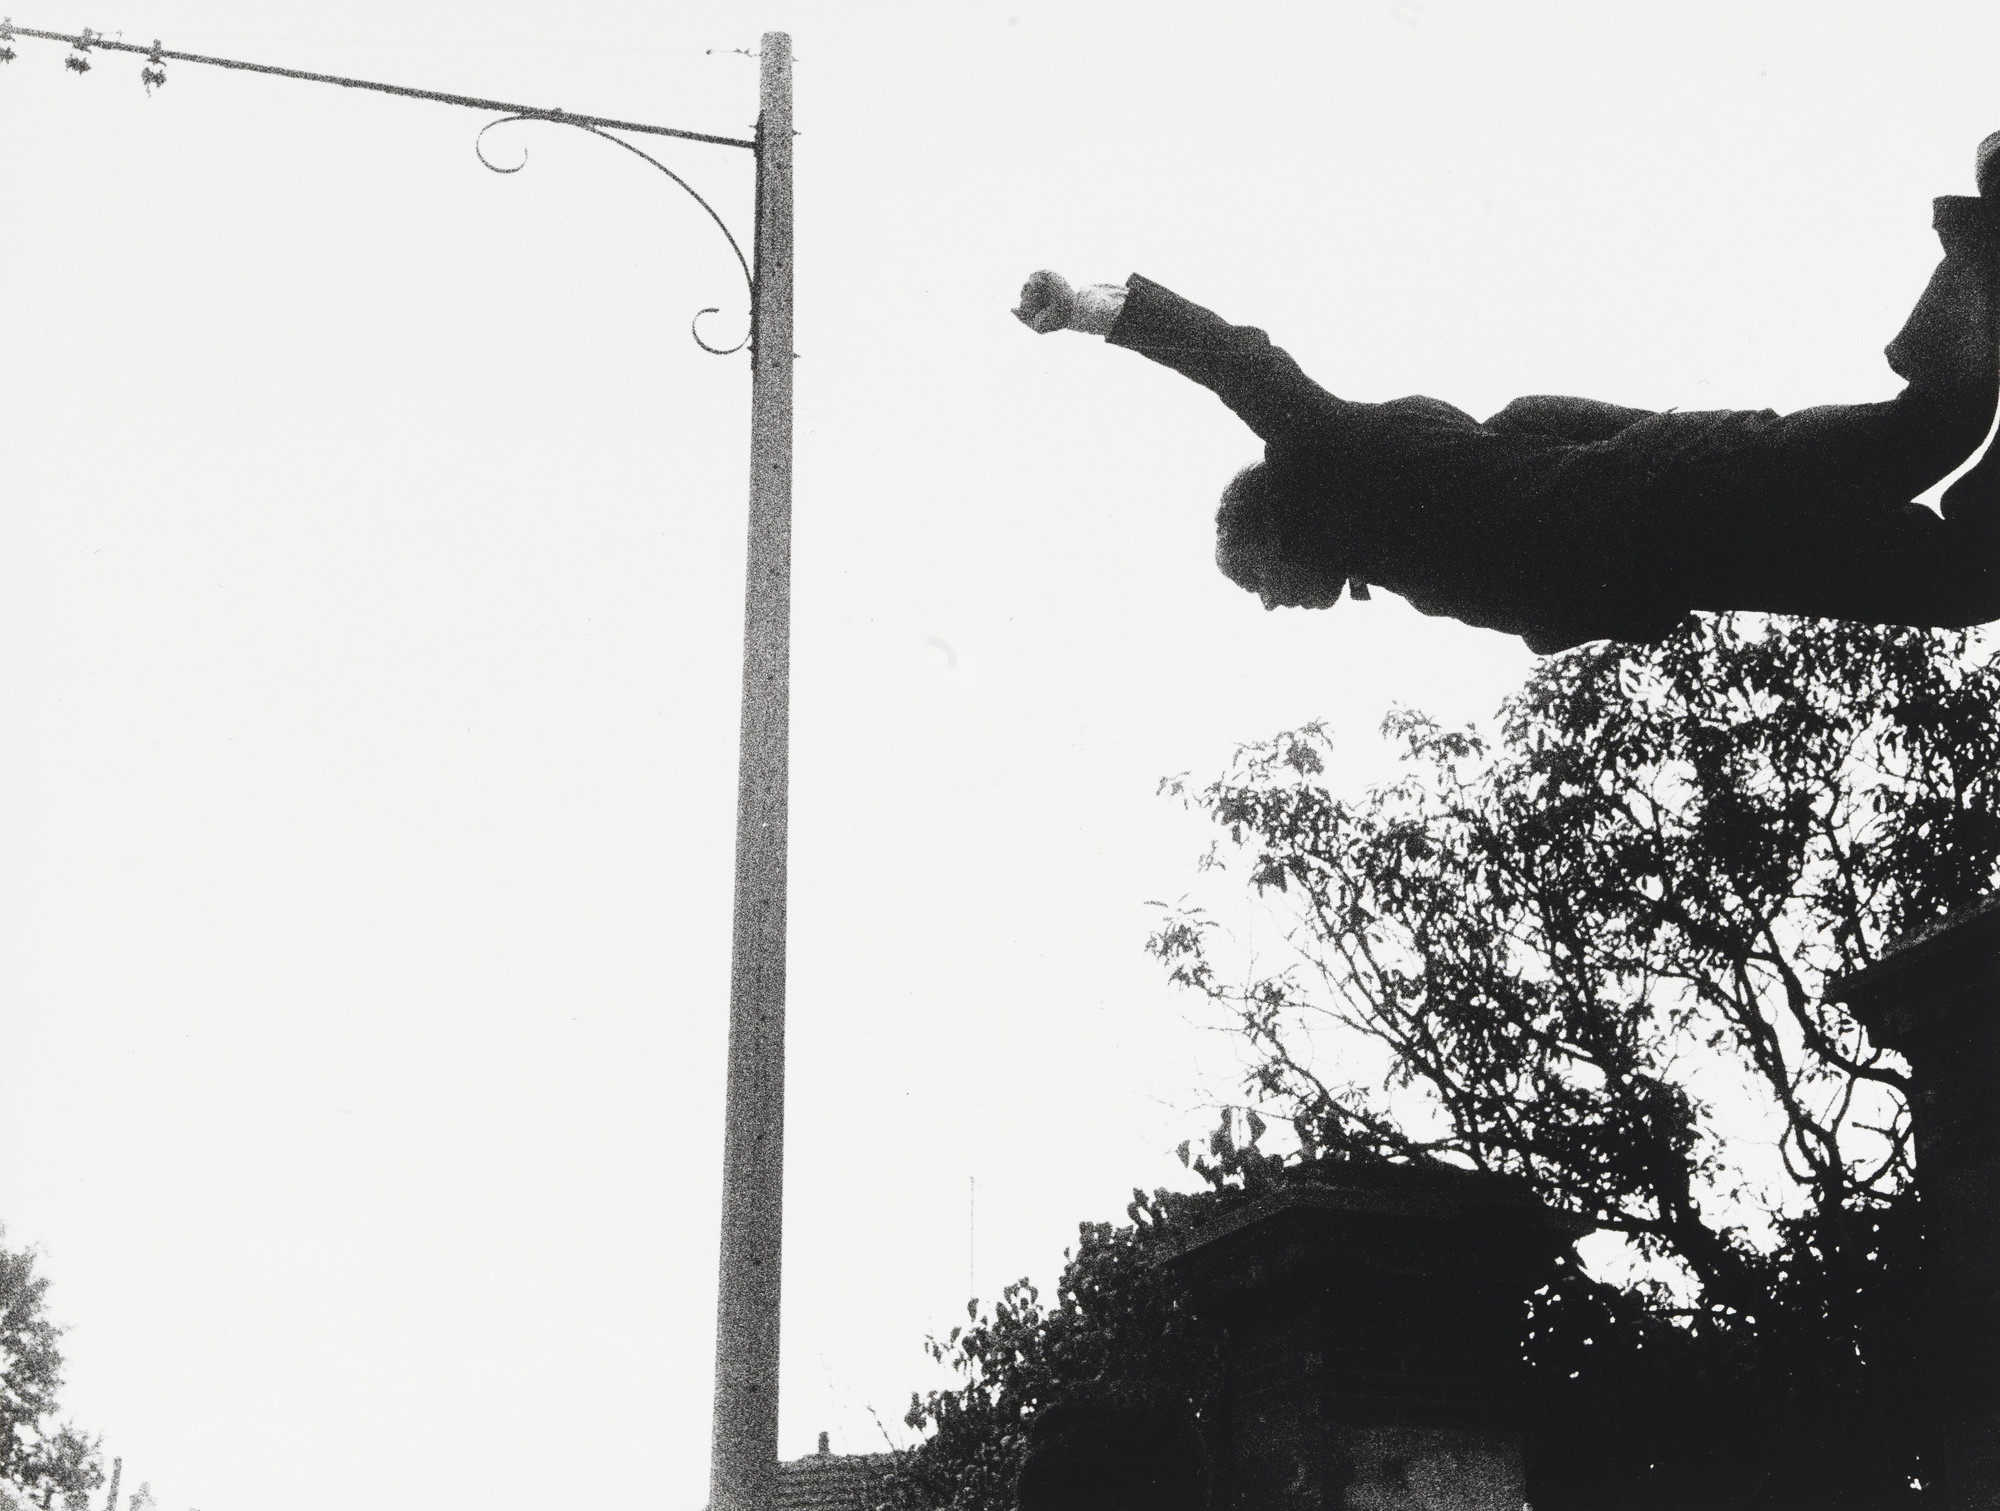 Yves Klein, Harry Shunk, János Kender. Leap into the Void. 1960